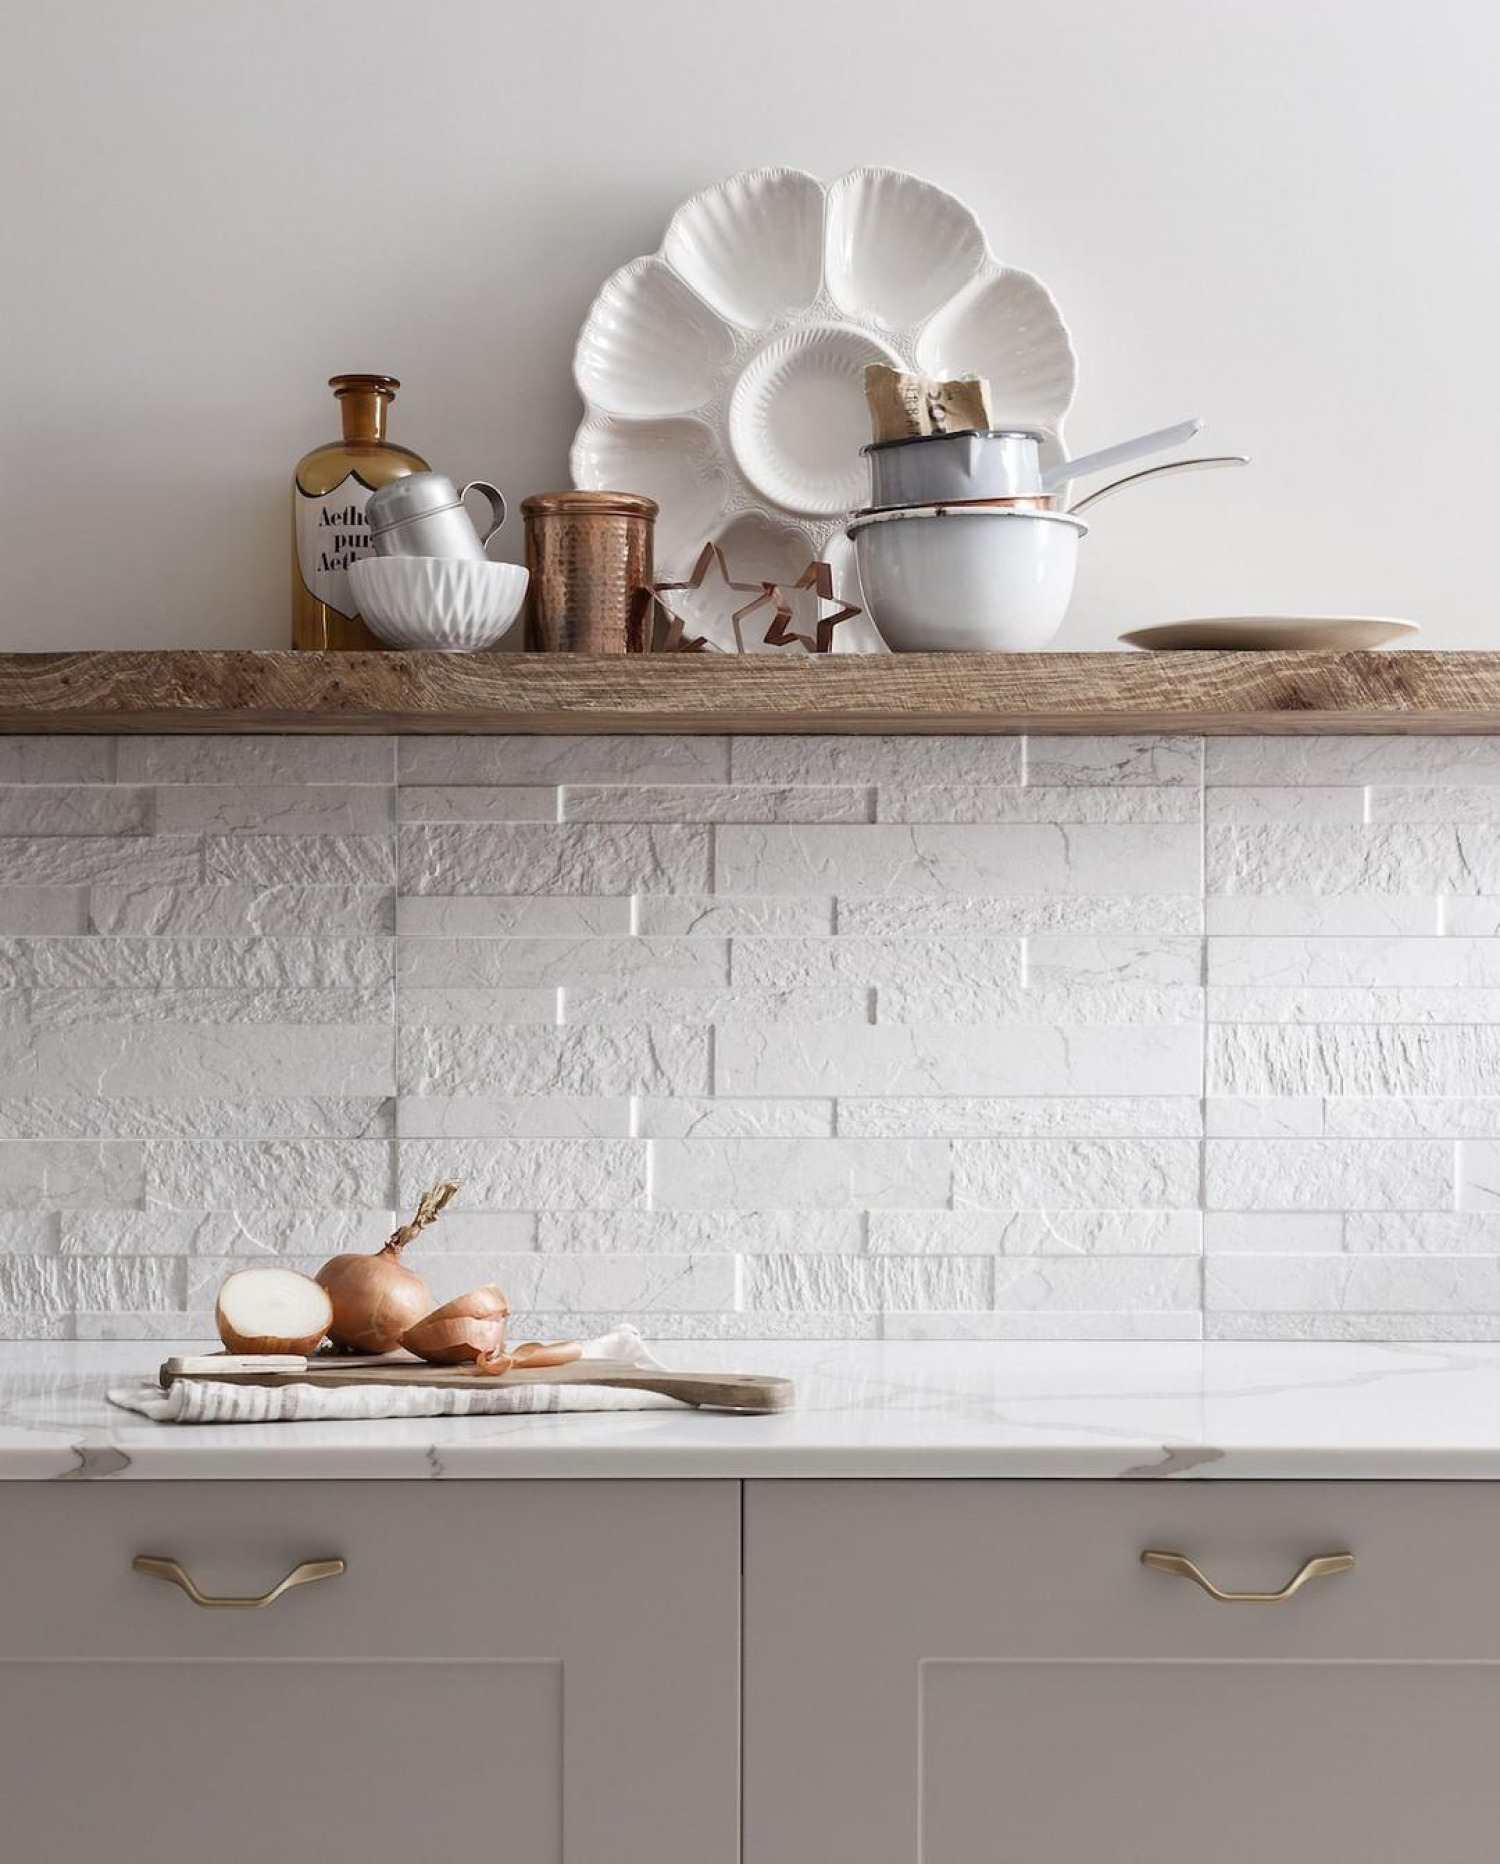 Kitchen Tiles Textured Wall